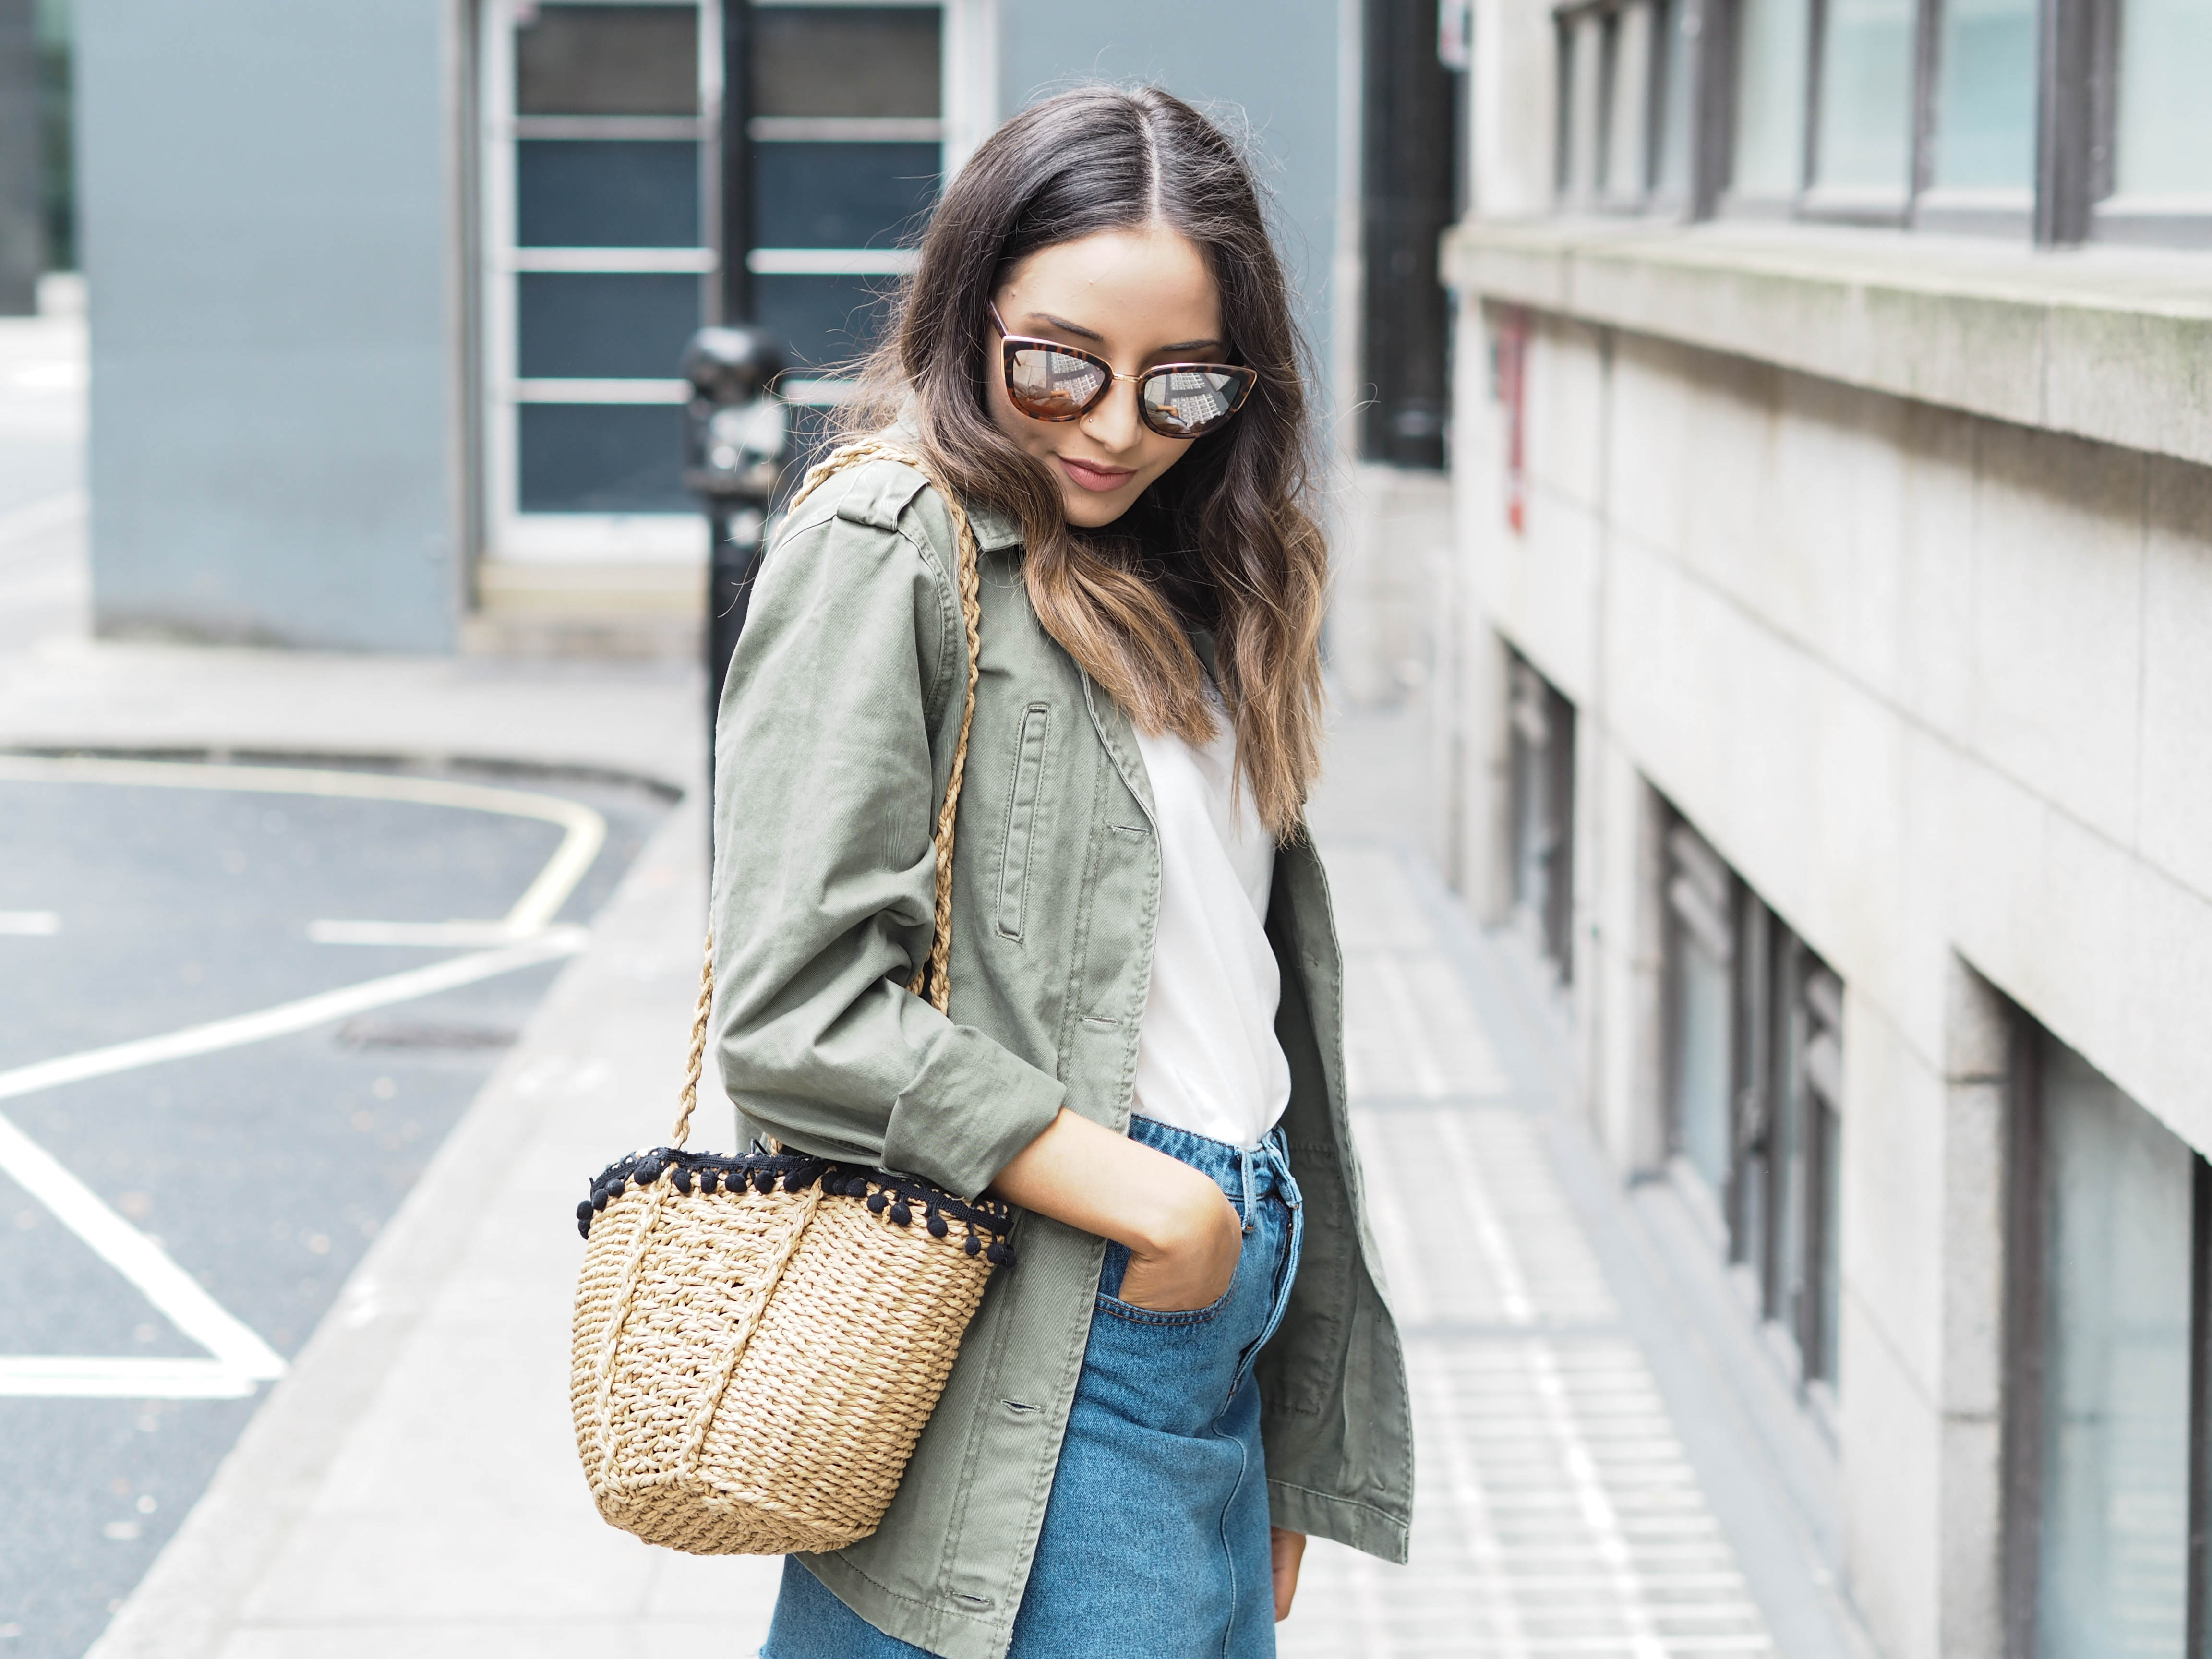 Let's chat about the khaki shacket